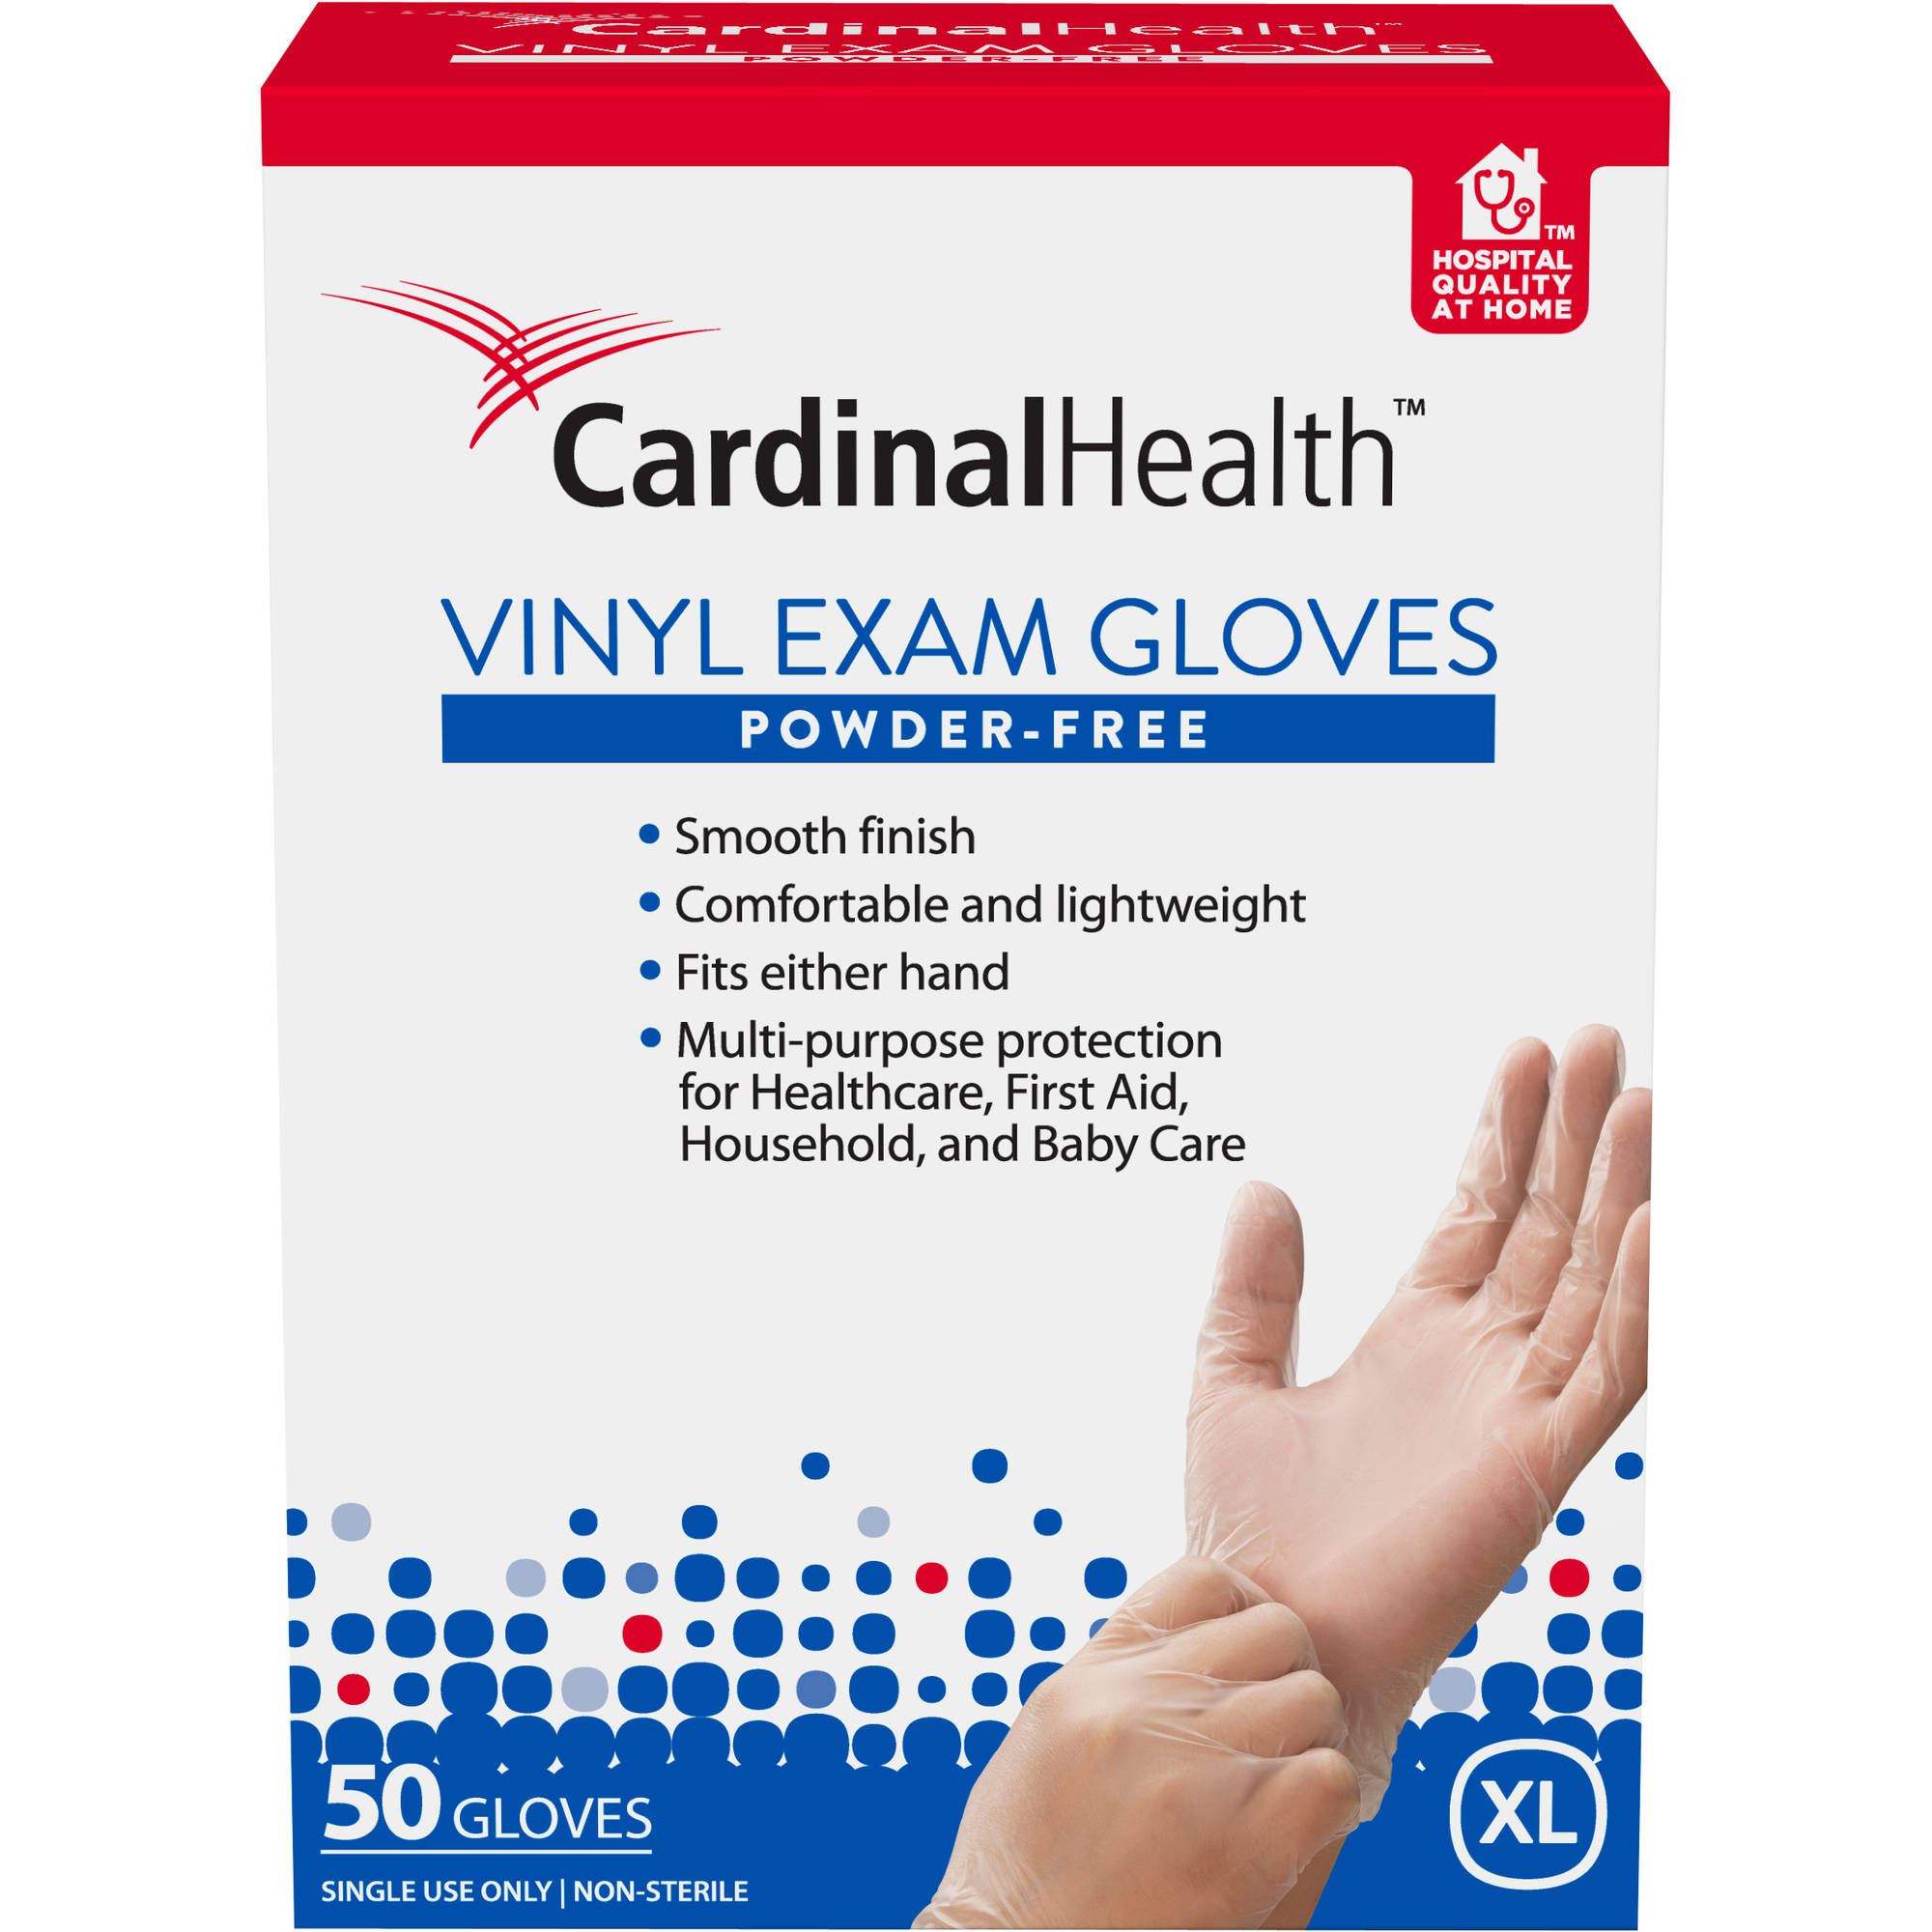 Cardinal Health Powder-Free Vinyl Exam Gloves, Extra Large, 50 count